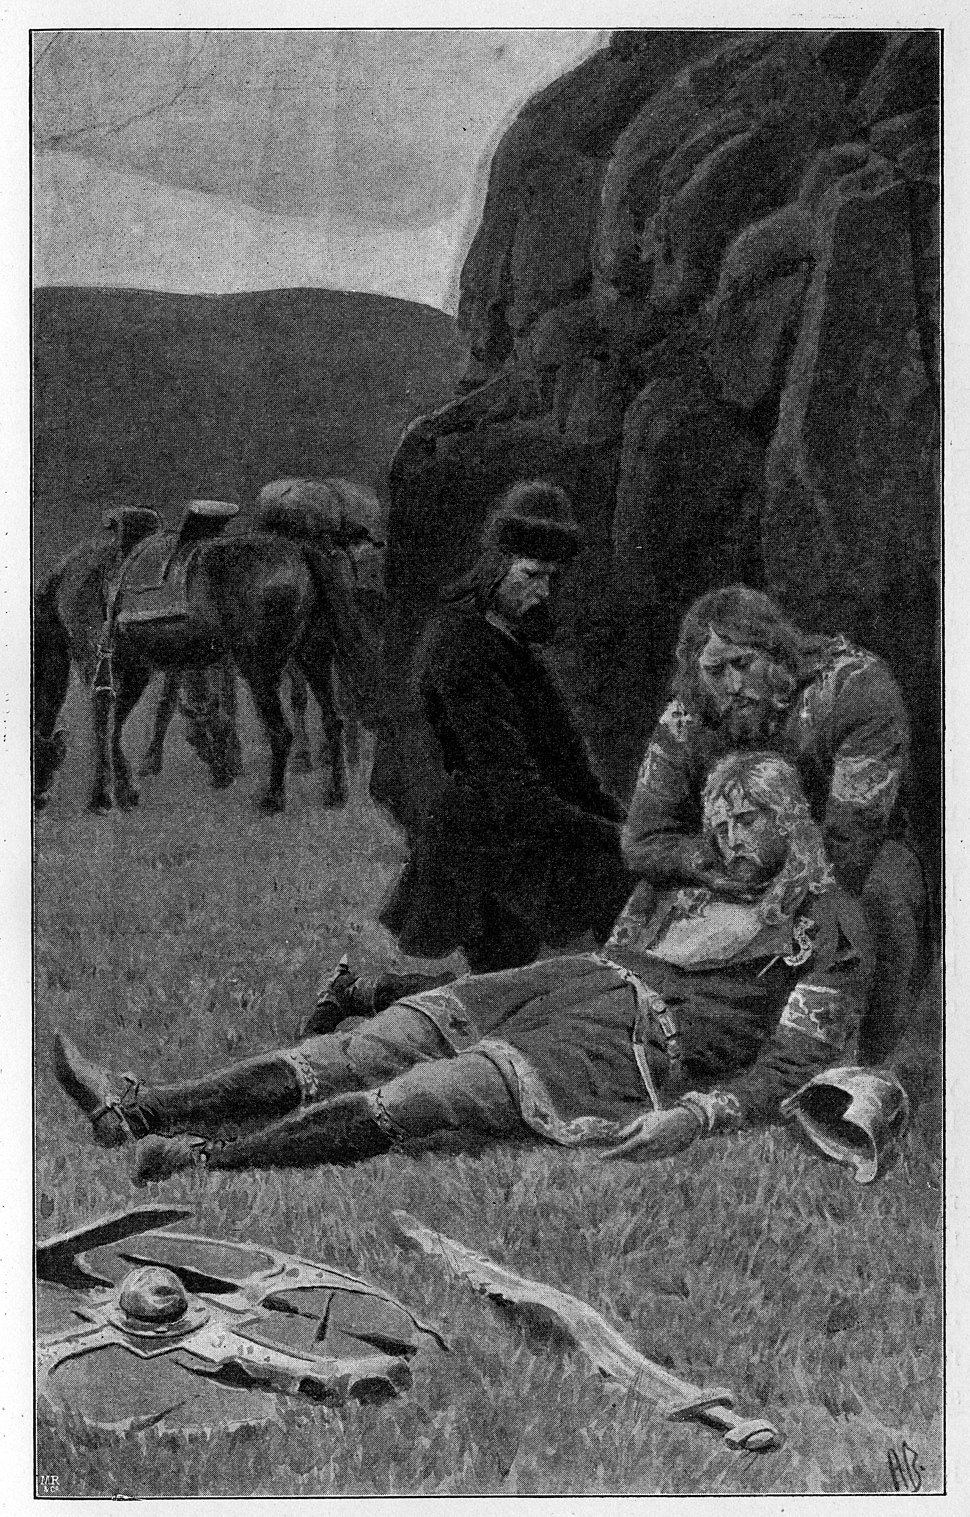 Laxdæla saga - Kjartan died on the lap of Bolli